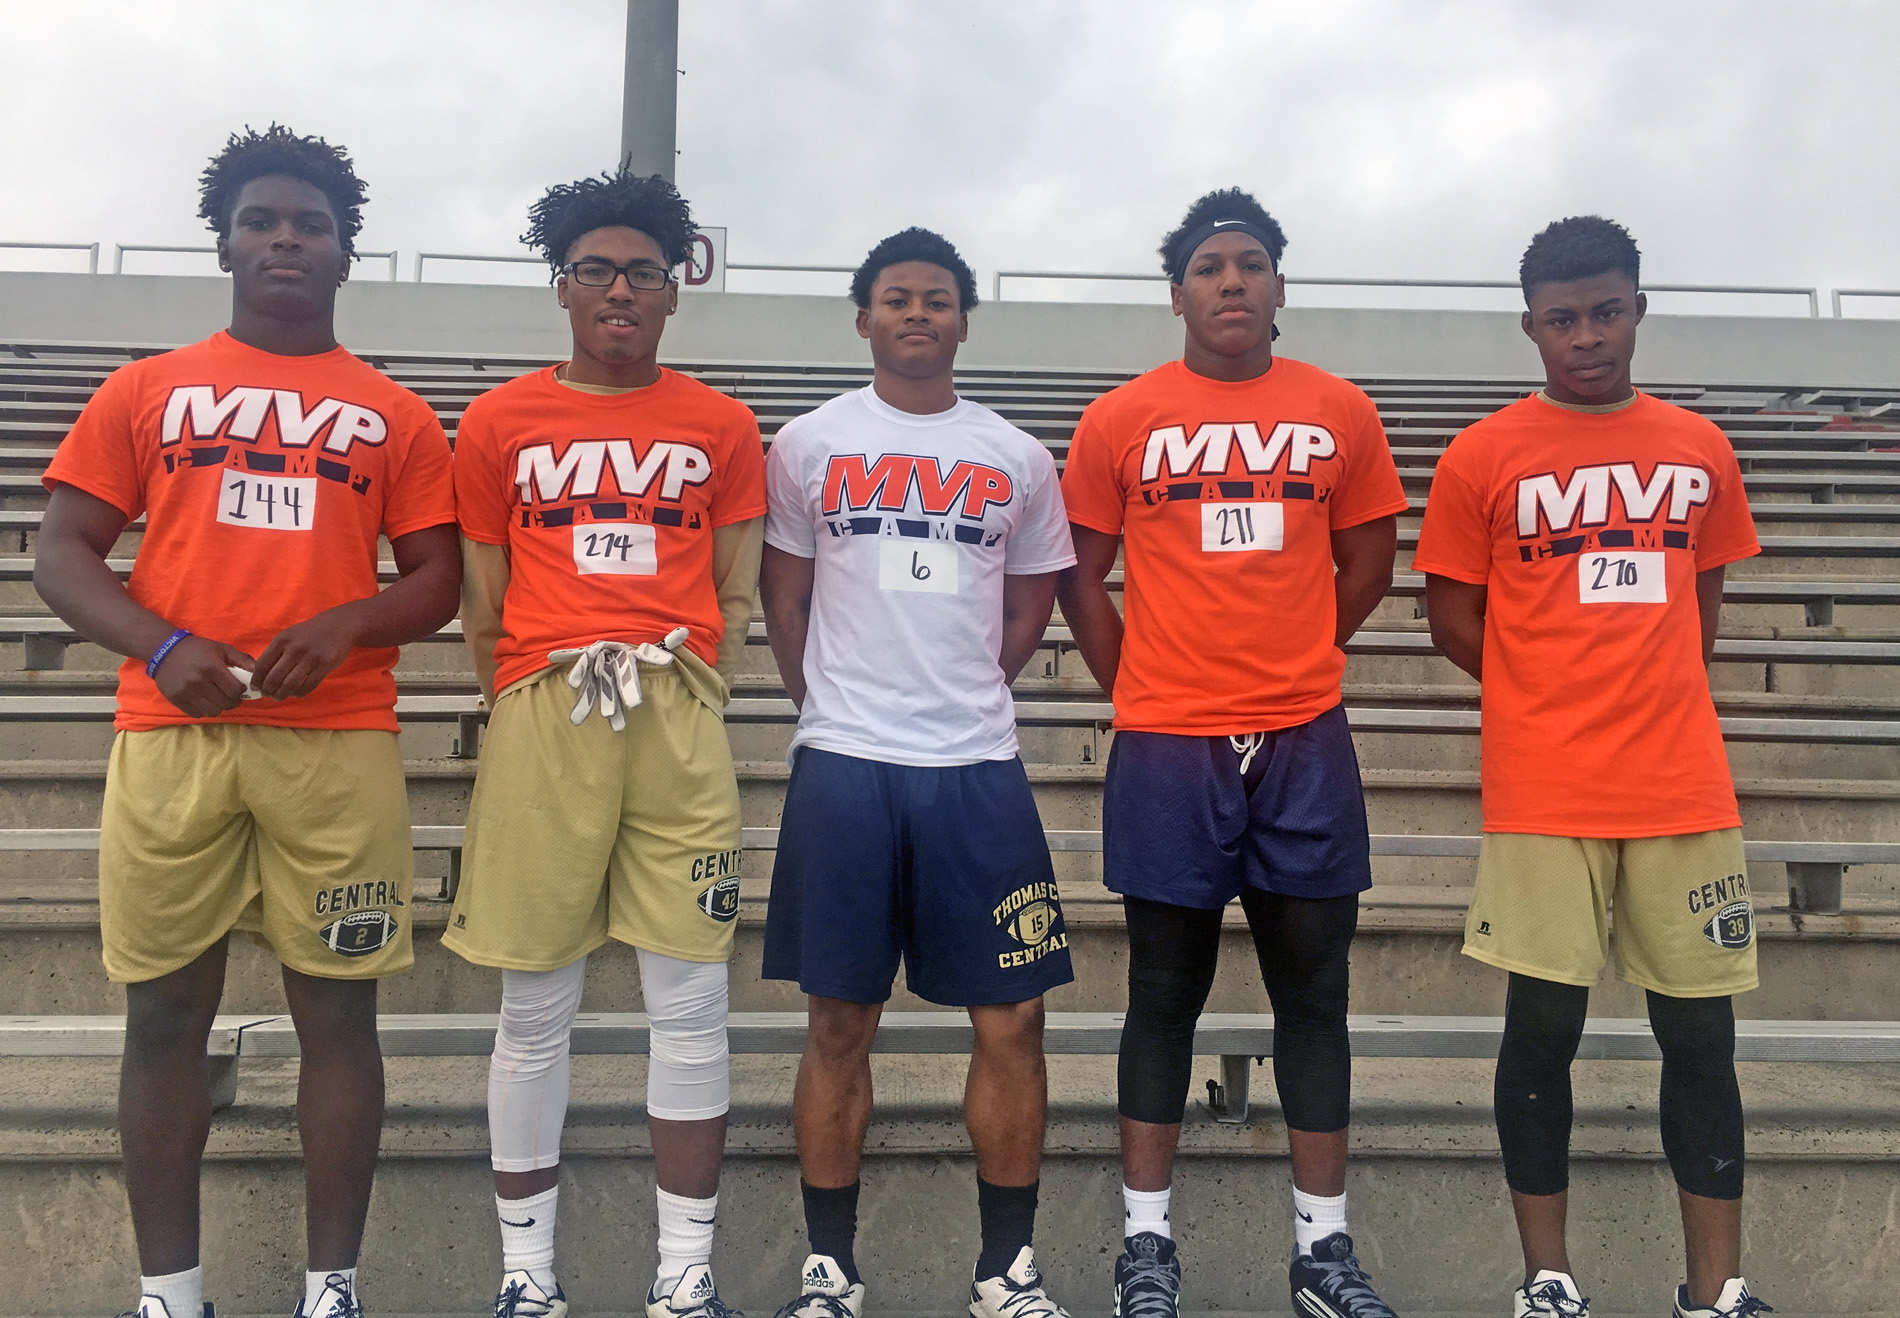 TCCHS athletes Darien Daniels, B.J. Smallwood, Tay Cooksey, Jaylen Dunbar, and A.J. Stephenson participated in a recent MVP camp in Valdosta.